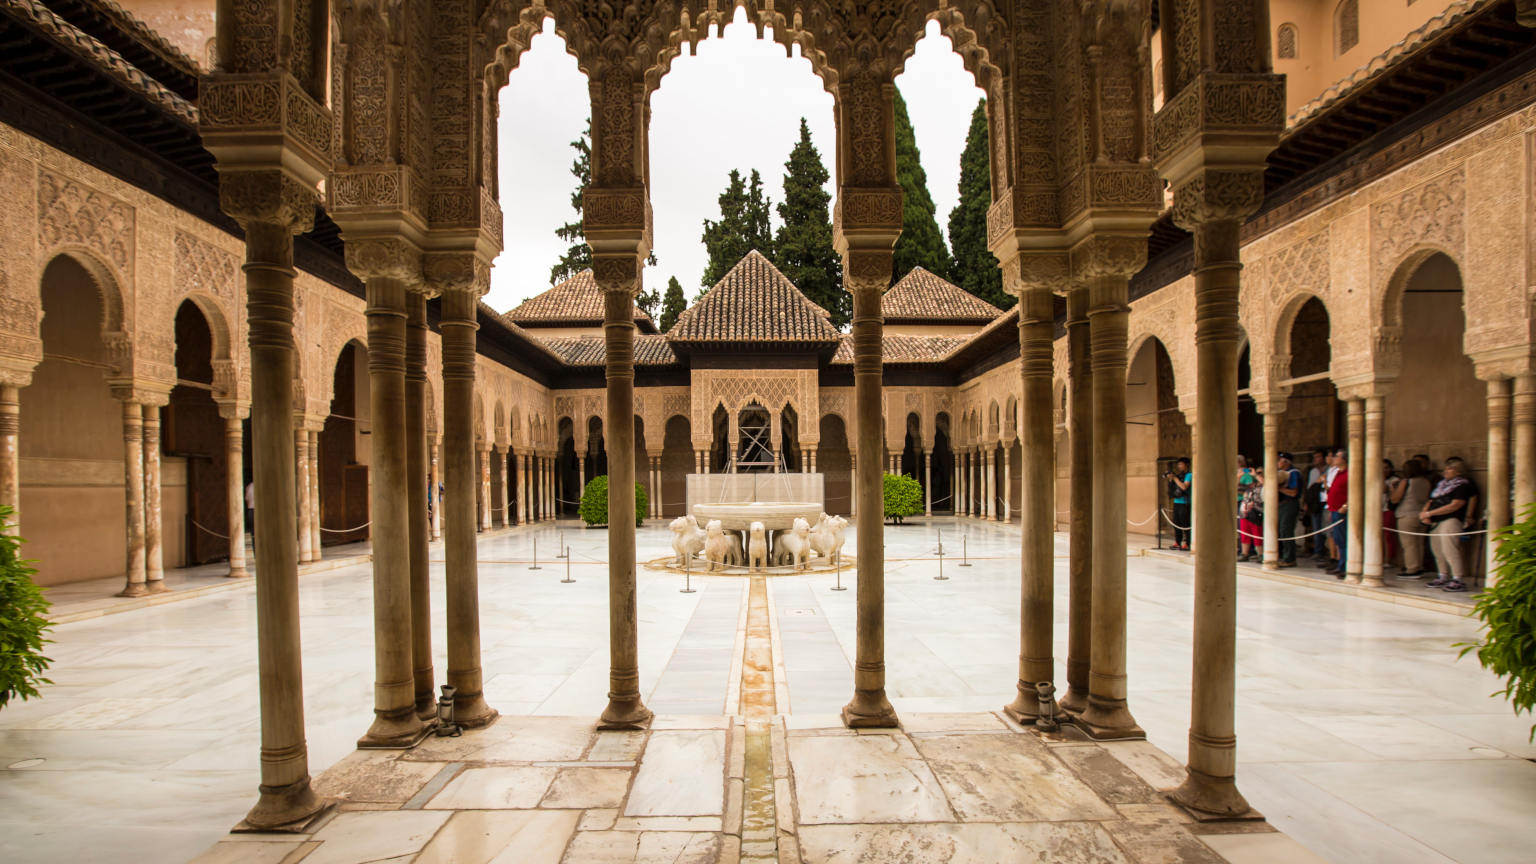 Spain-Granada-Alhambra-Palace-Courtyard